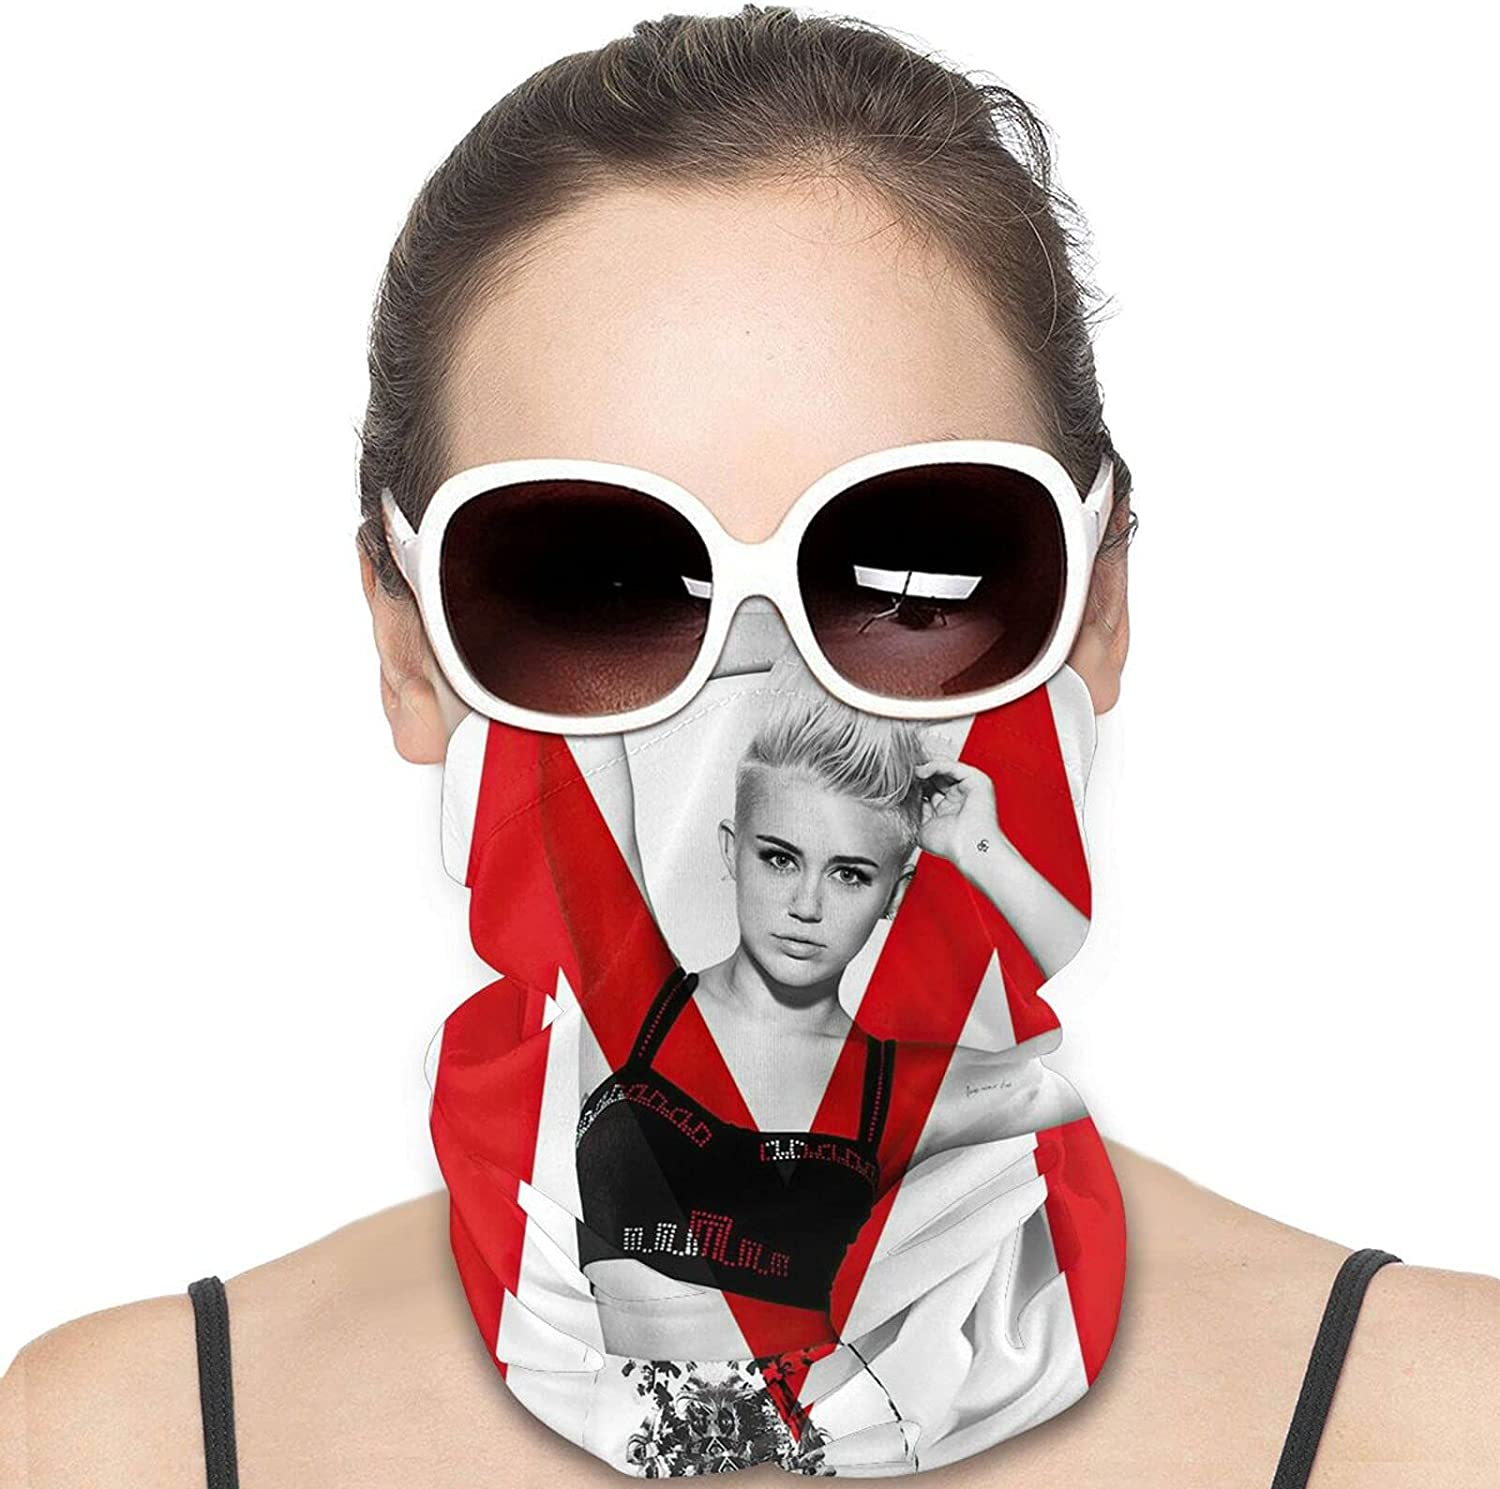 Miley Cyrus Unisex Neck Gaiter Face Mask Mans Womans Multifunction Balaclava Face Cover,Cycling Mask,Sport Neck Gaiter,Hiking Scarf,Fishing Mask, Motorcycle Face Cover